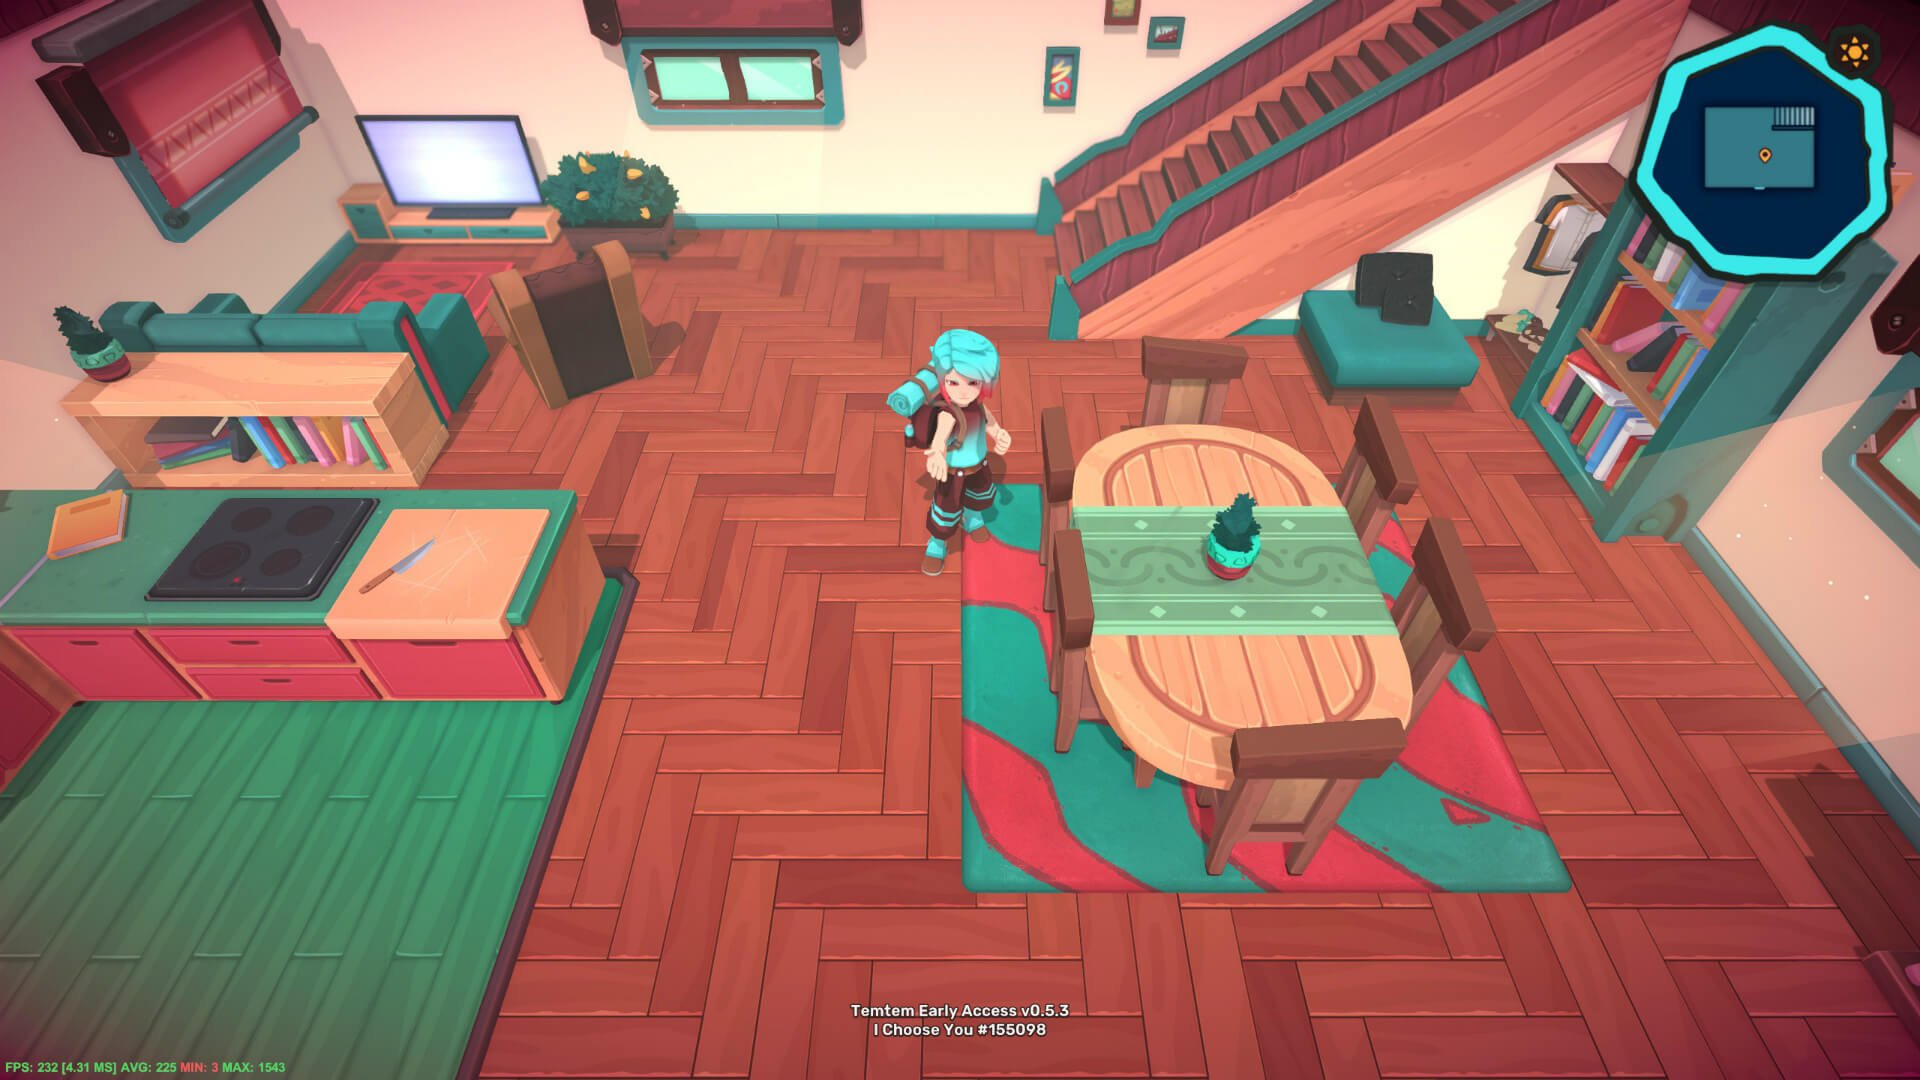 Temtem Early Access Review: Come for the Catching, No Reason to Stay Yet